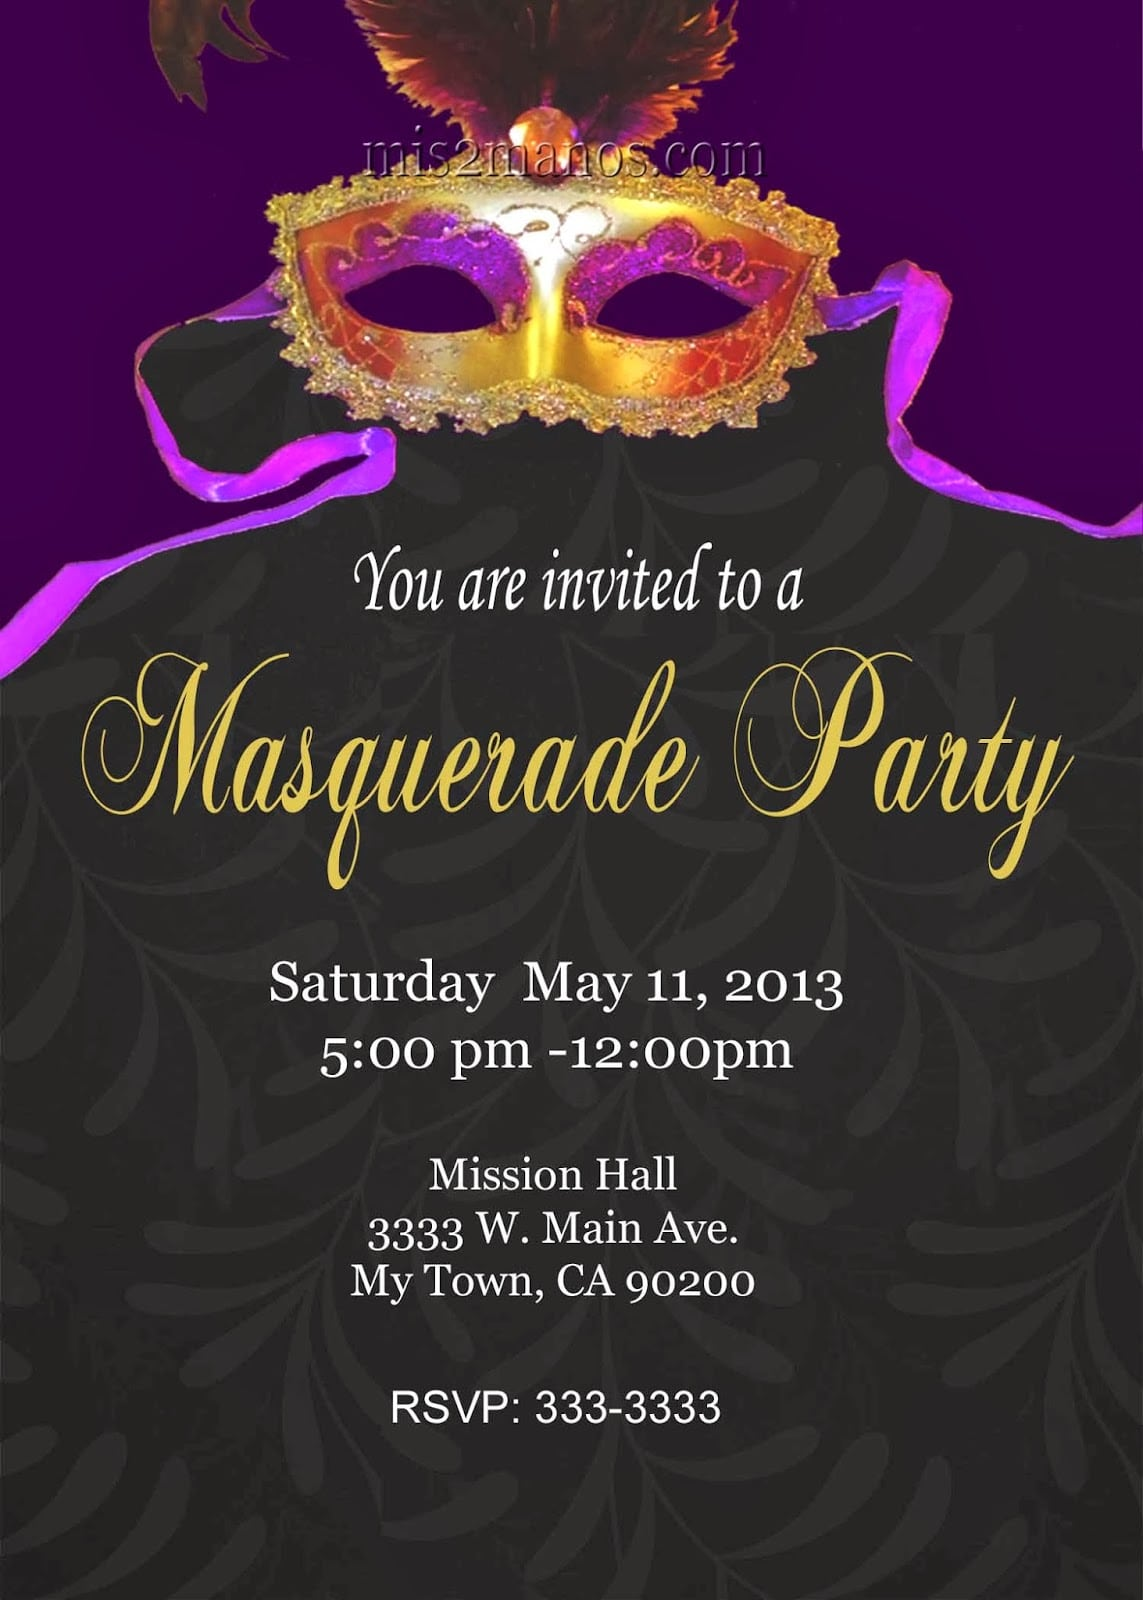 Transitional Venetian Masquerade Party Invitations Features Party